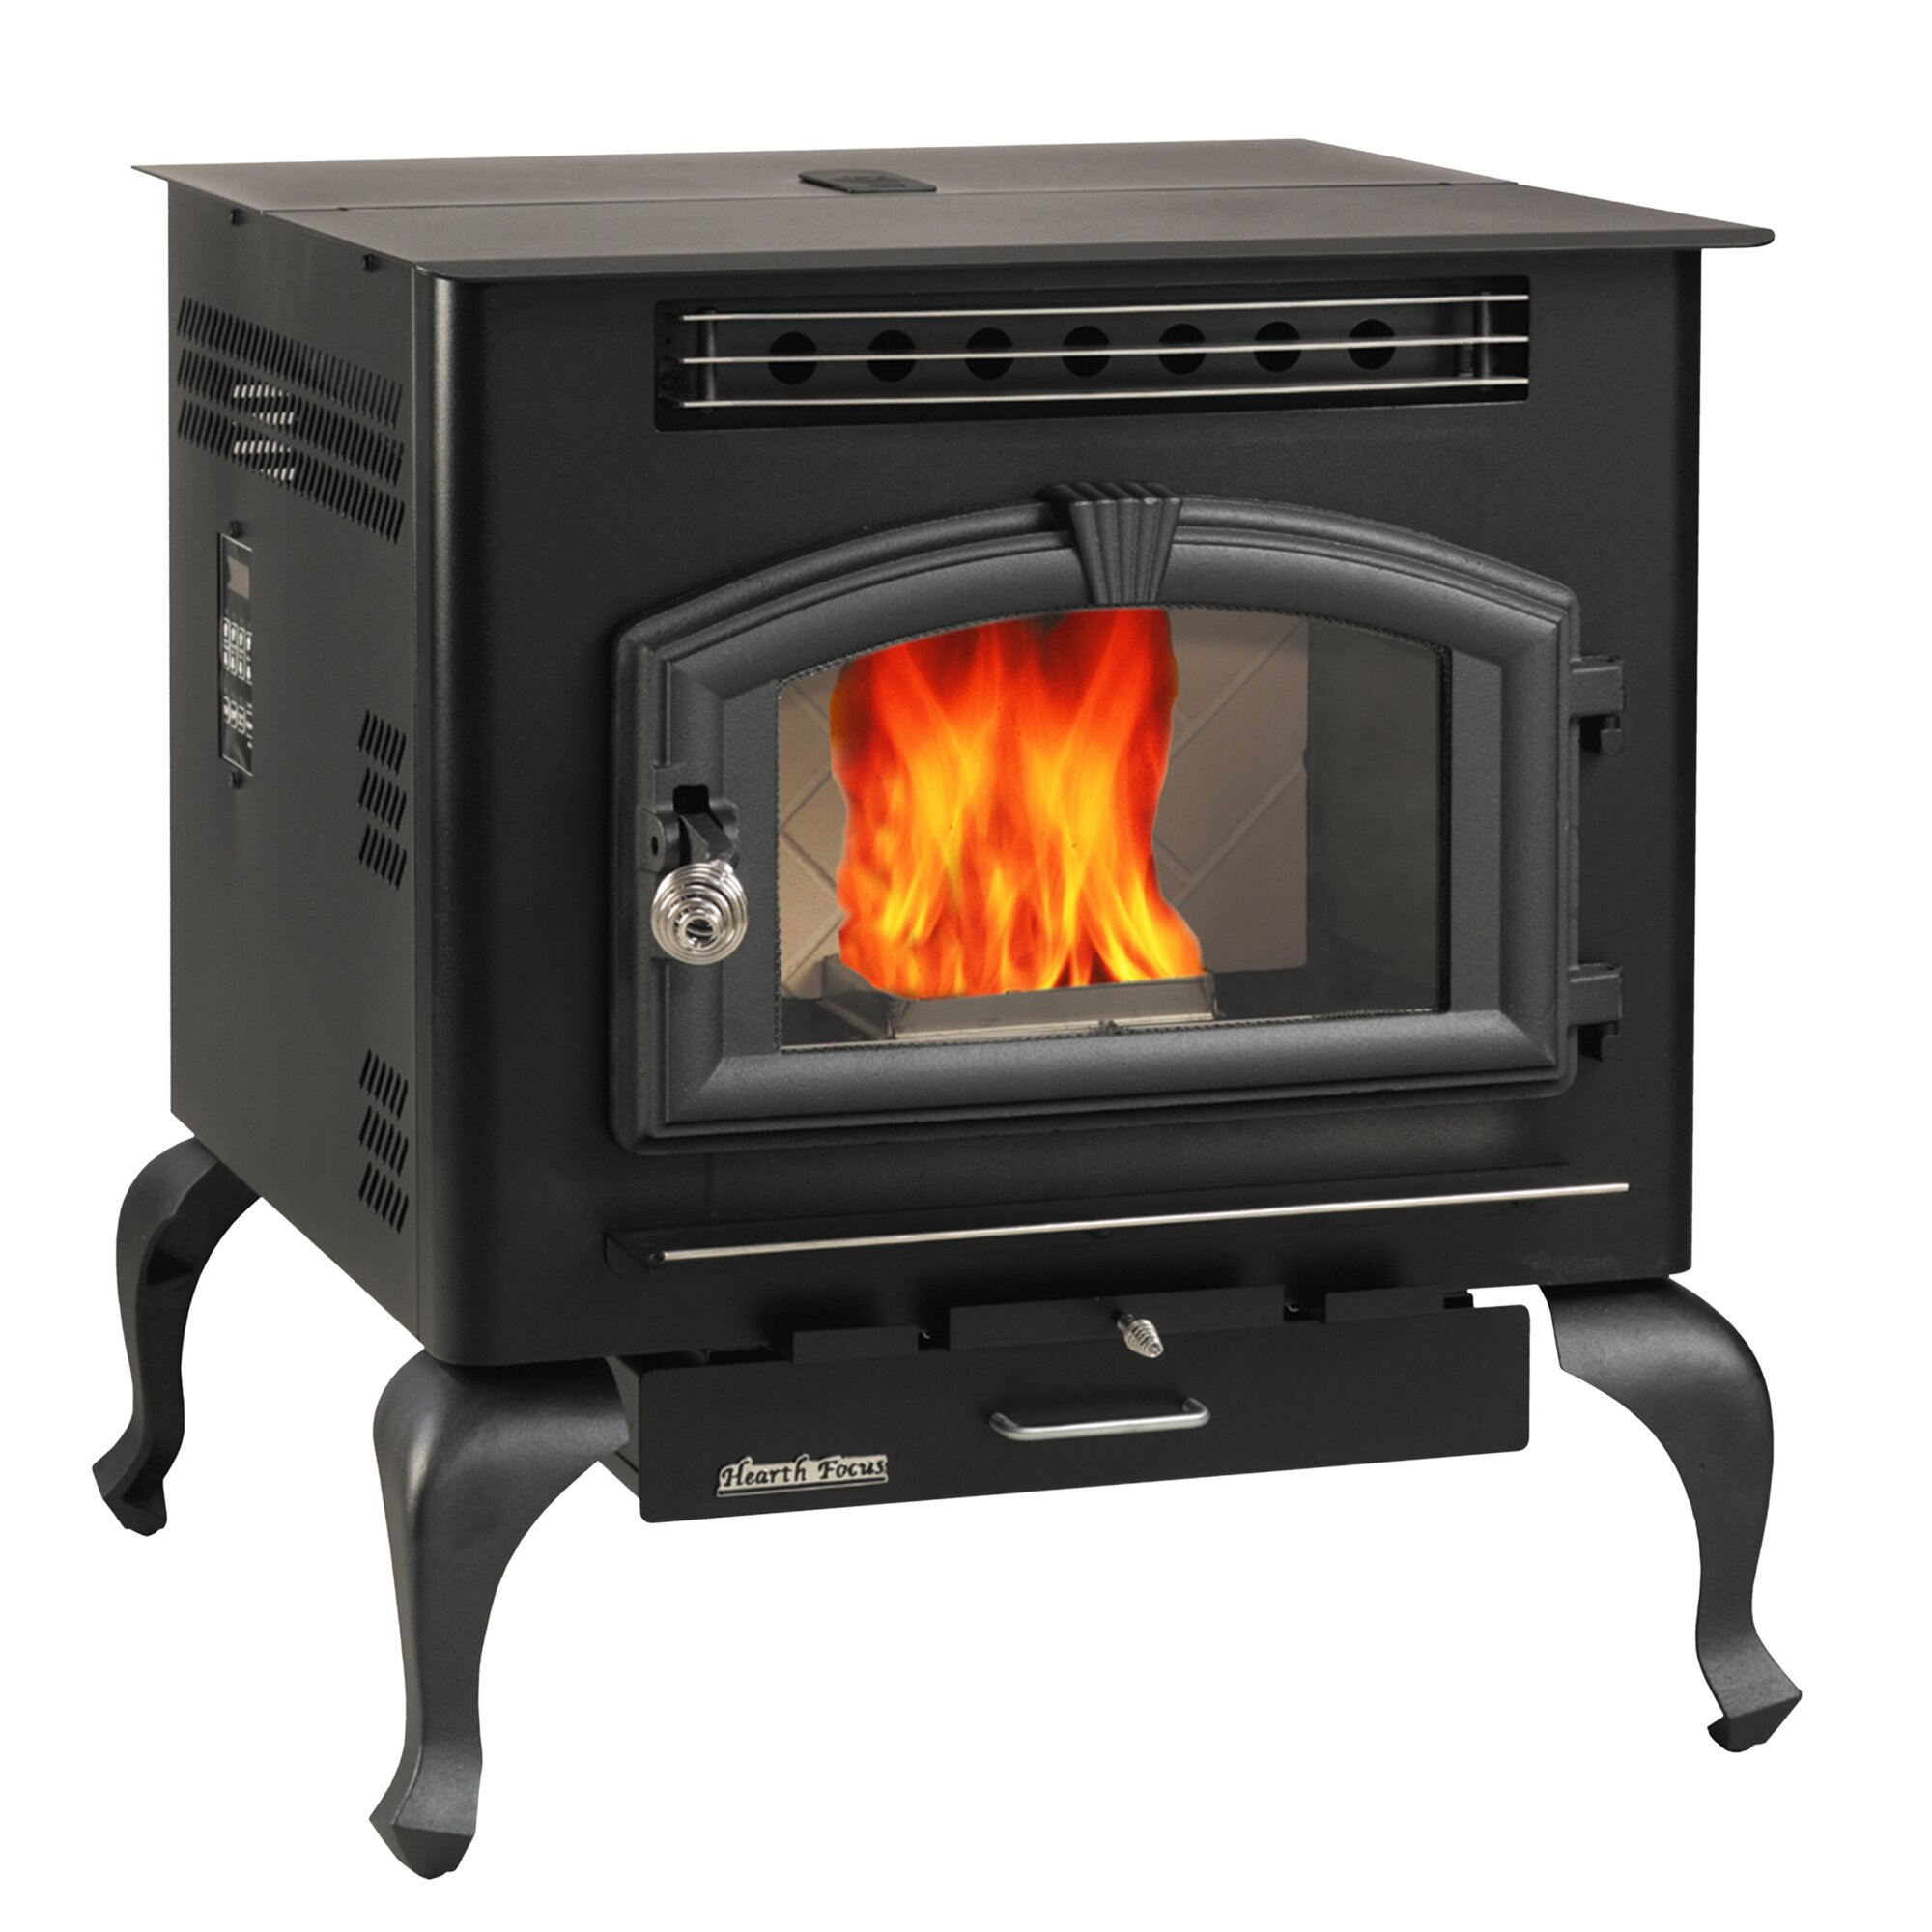 wood burning stoves for mobile homes with Pedestal Model Corn Pellet Stove 6041 Xxc1016 on Frontier Plus Portable Woodstove Anevay together with Living Room With Brick Fireplace Decorating Ideas Small Kitchen Hall Style  pact Accessories Landscape Architects Electrical Contractors in addition Fall Mantel Ideas Autumn Mantle besides Cabin 2 A Contemporary Small Retreat By Maddison Architects also Pedestal Model Corn Pellet Stove 6041 XXC1016.